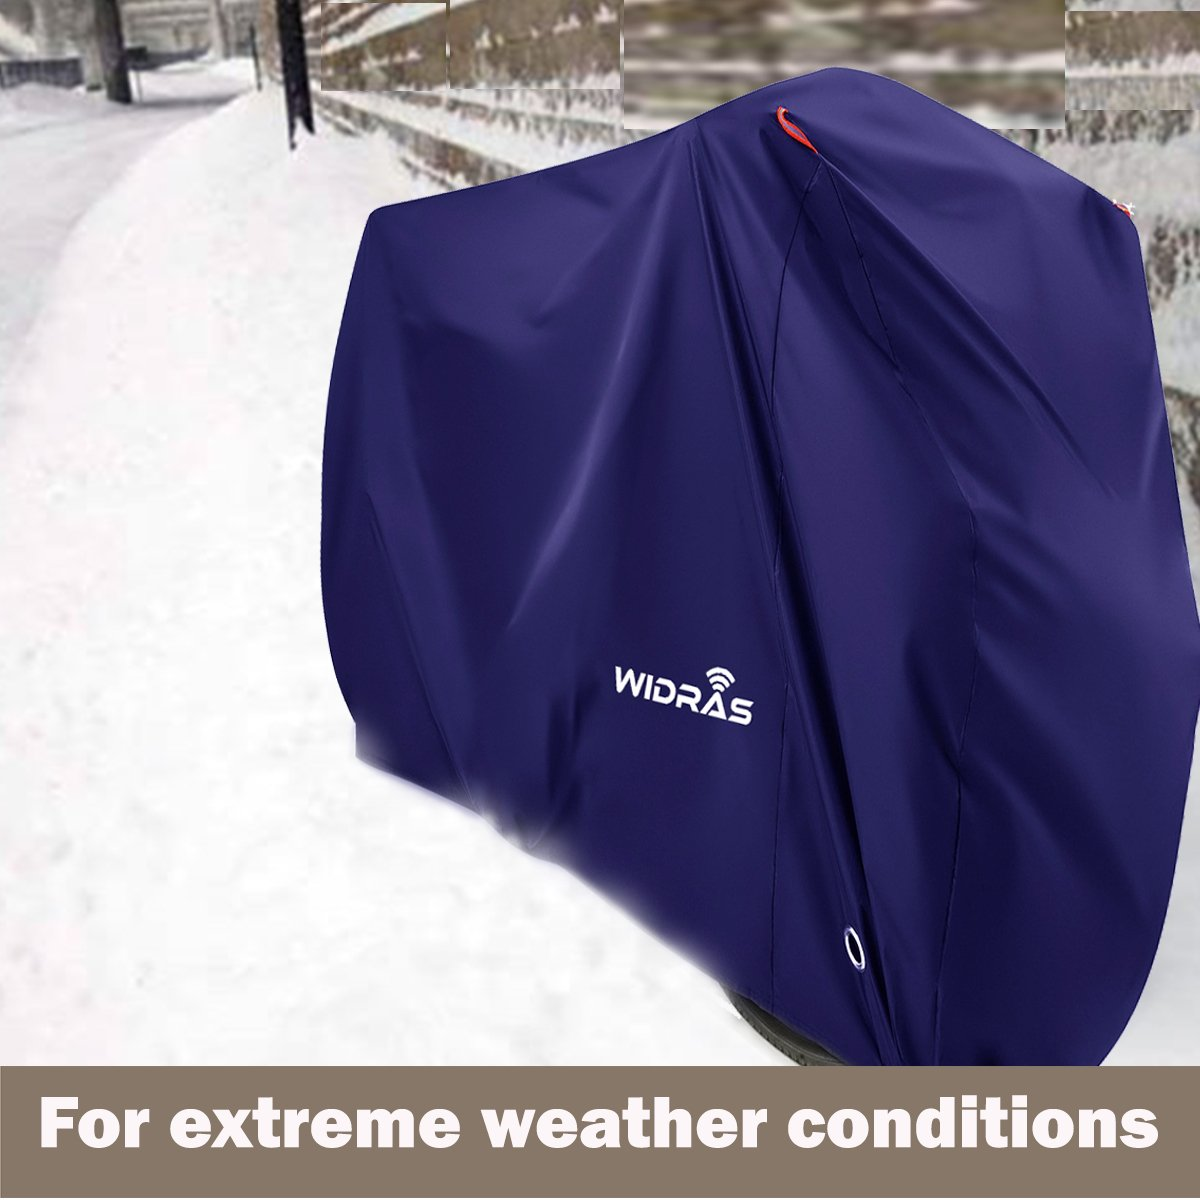 Widras Bicycle and Motorcycle Cover for Outdoor Storage Bike Heavy Duty Rip stop Material, Waterproof & Anti-UV Protection from All Weather Conditions for Mountain & Road Bikes by Widras (Image #8)